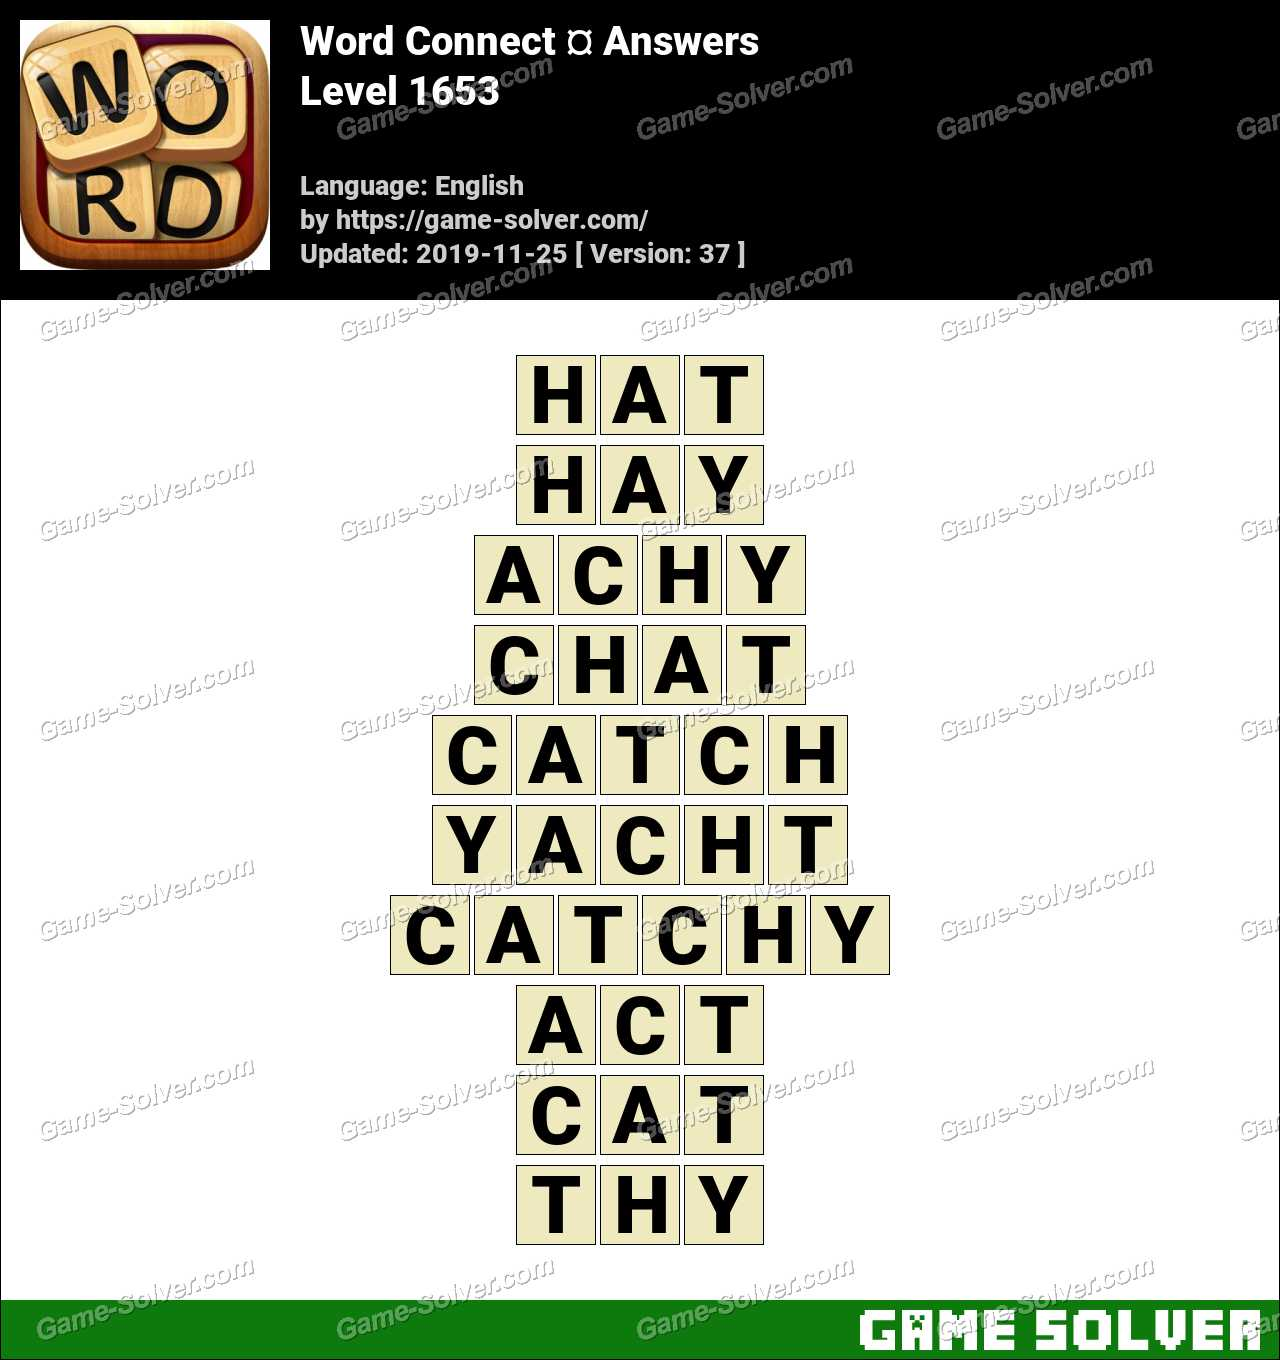 Word Connect Level 1653 Answers